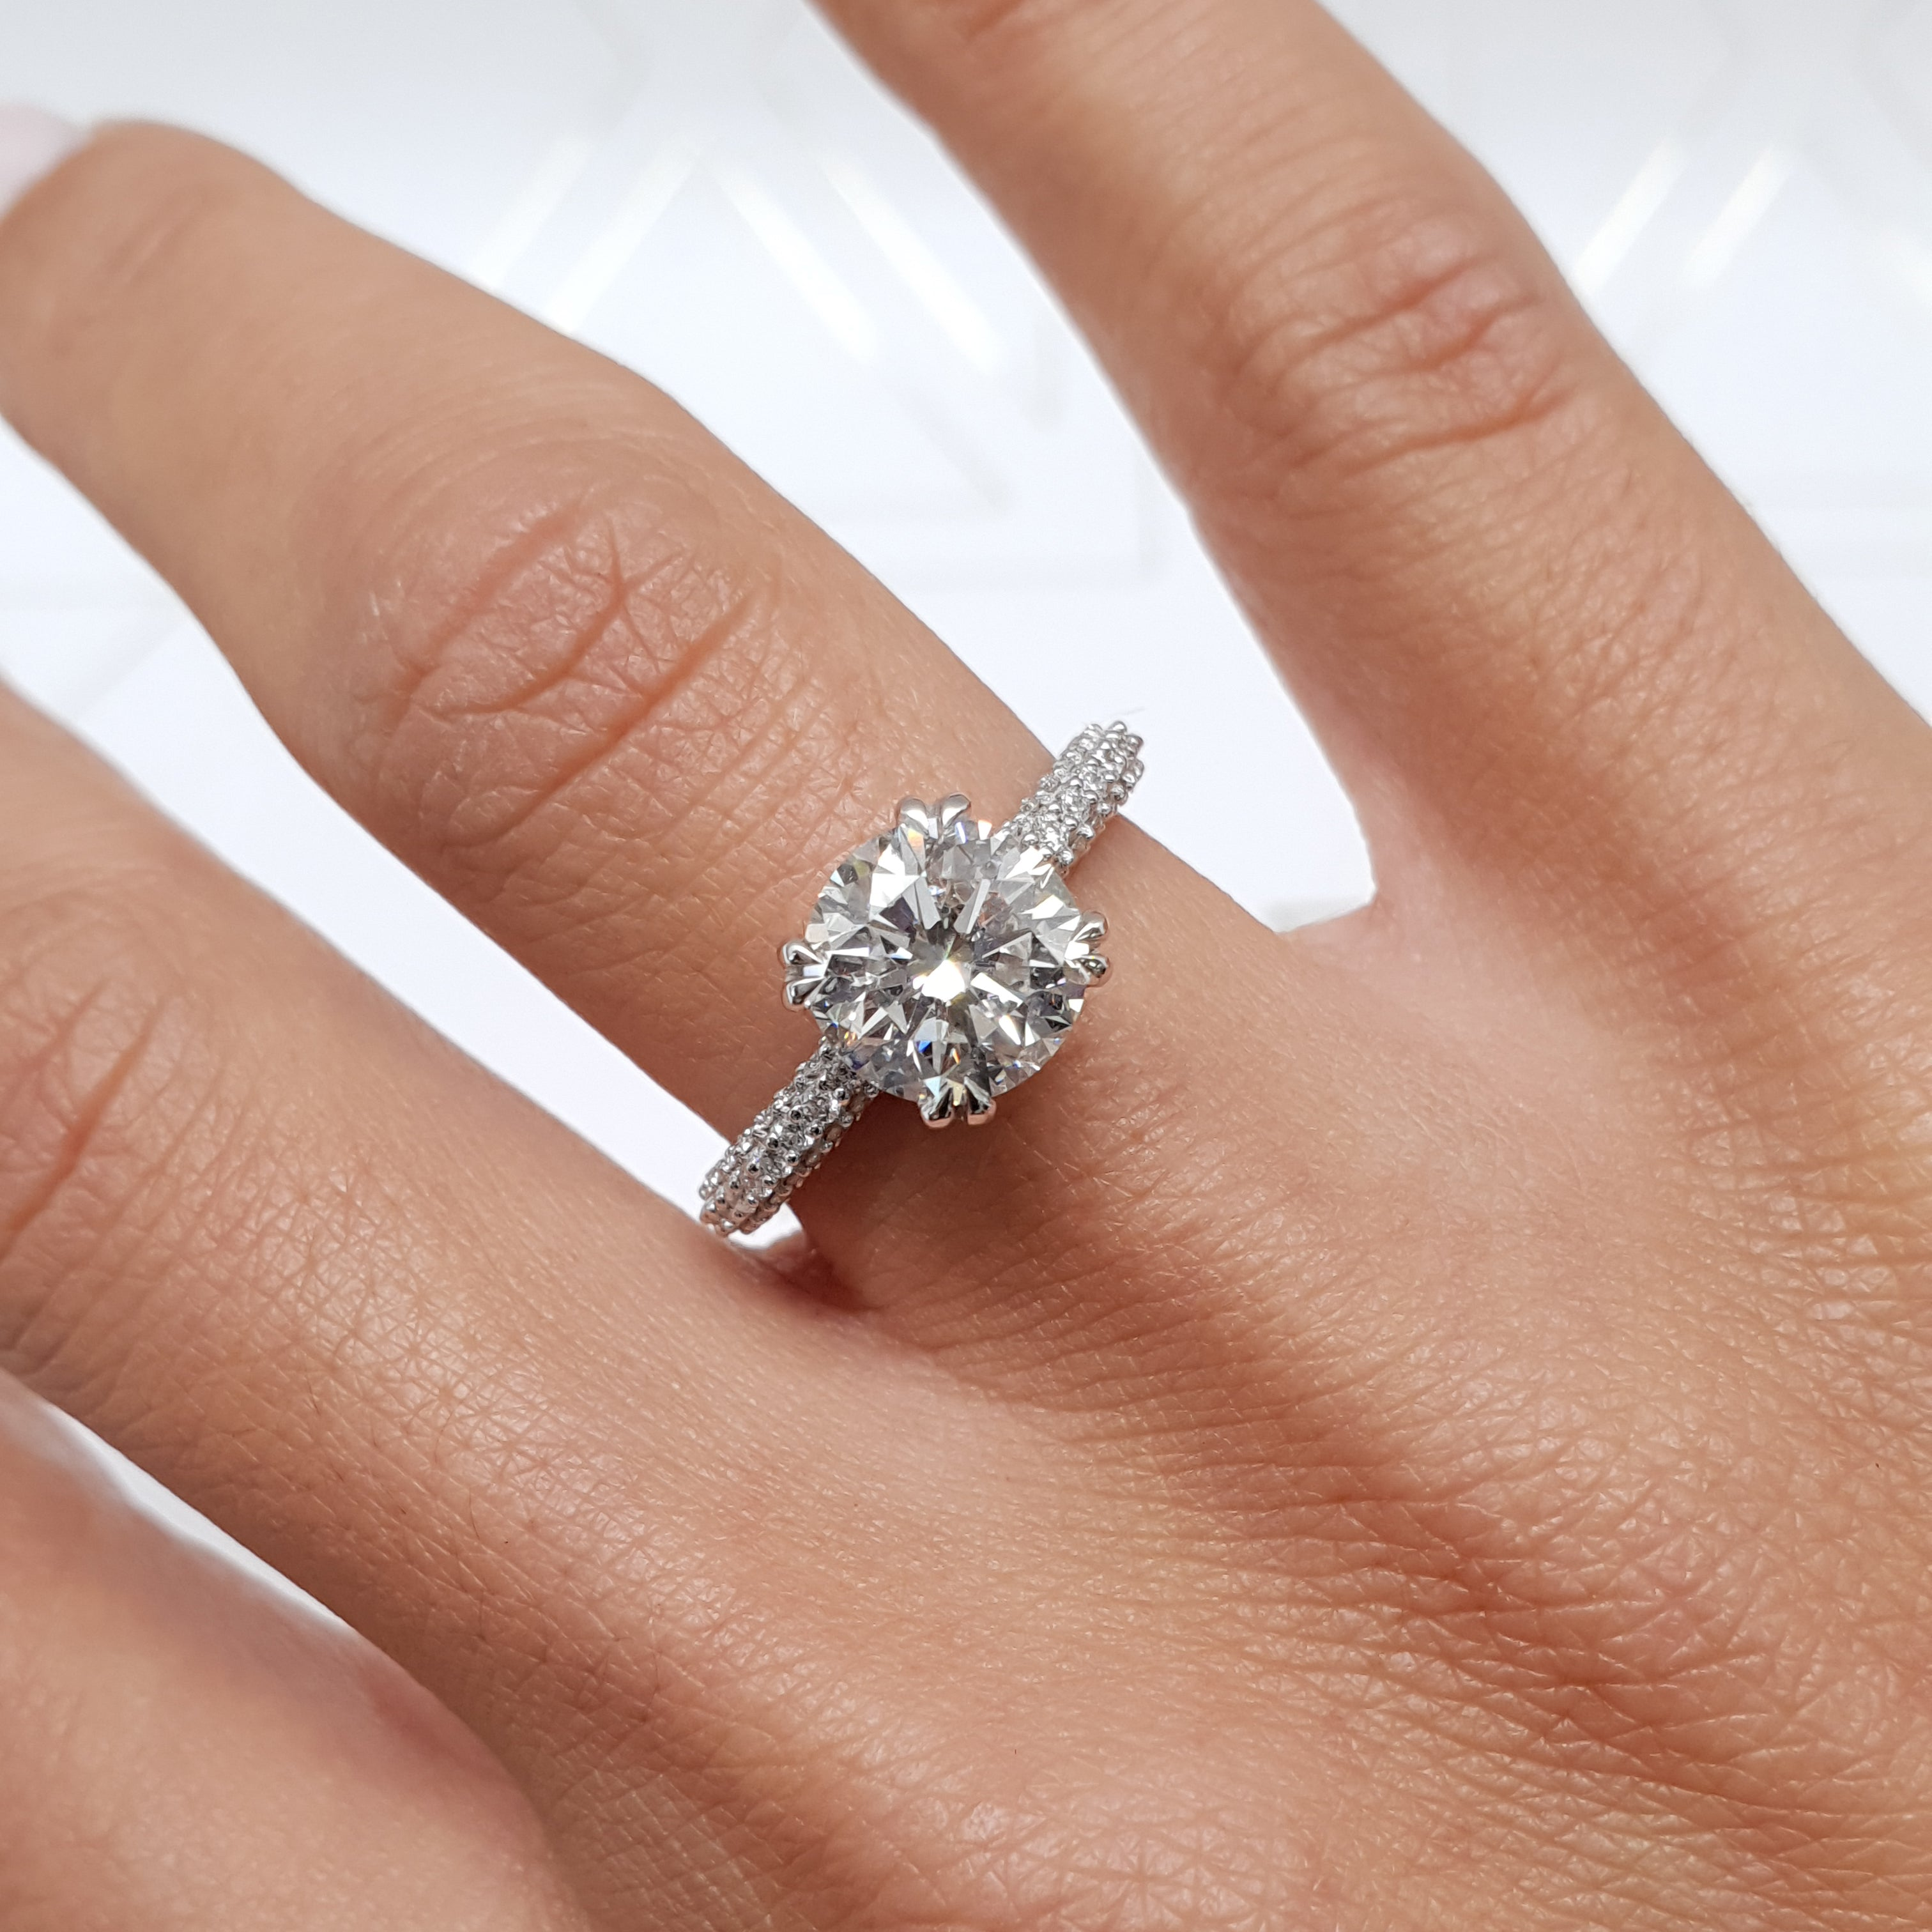 boo walden peek secret nyc diamonds solitaire prongs gemma gold conflict in diamond engagement custom products platinum delicate bridal free dana ring with a diamods white hidden